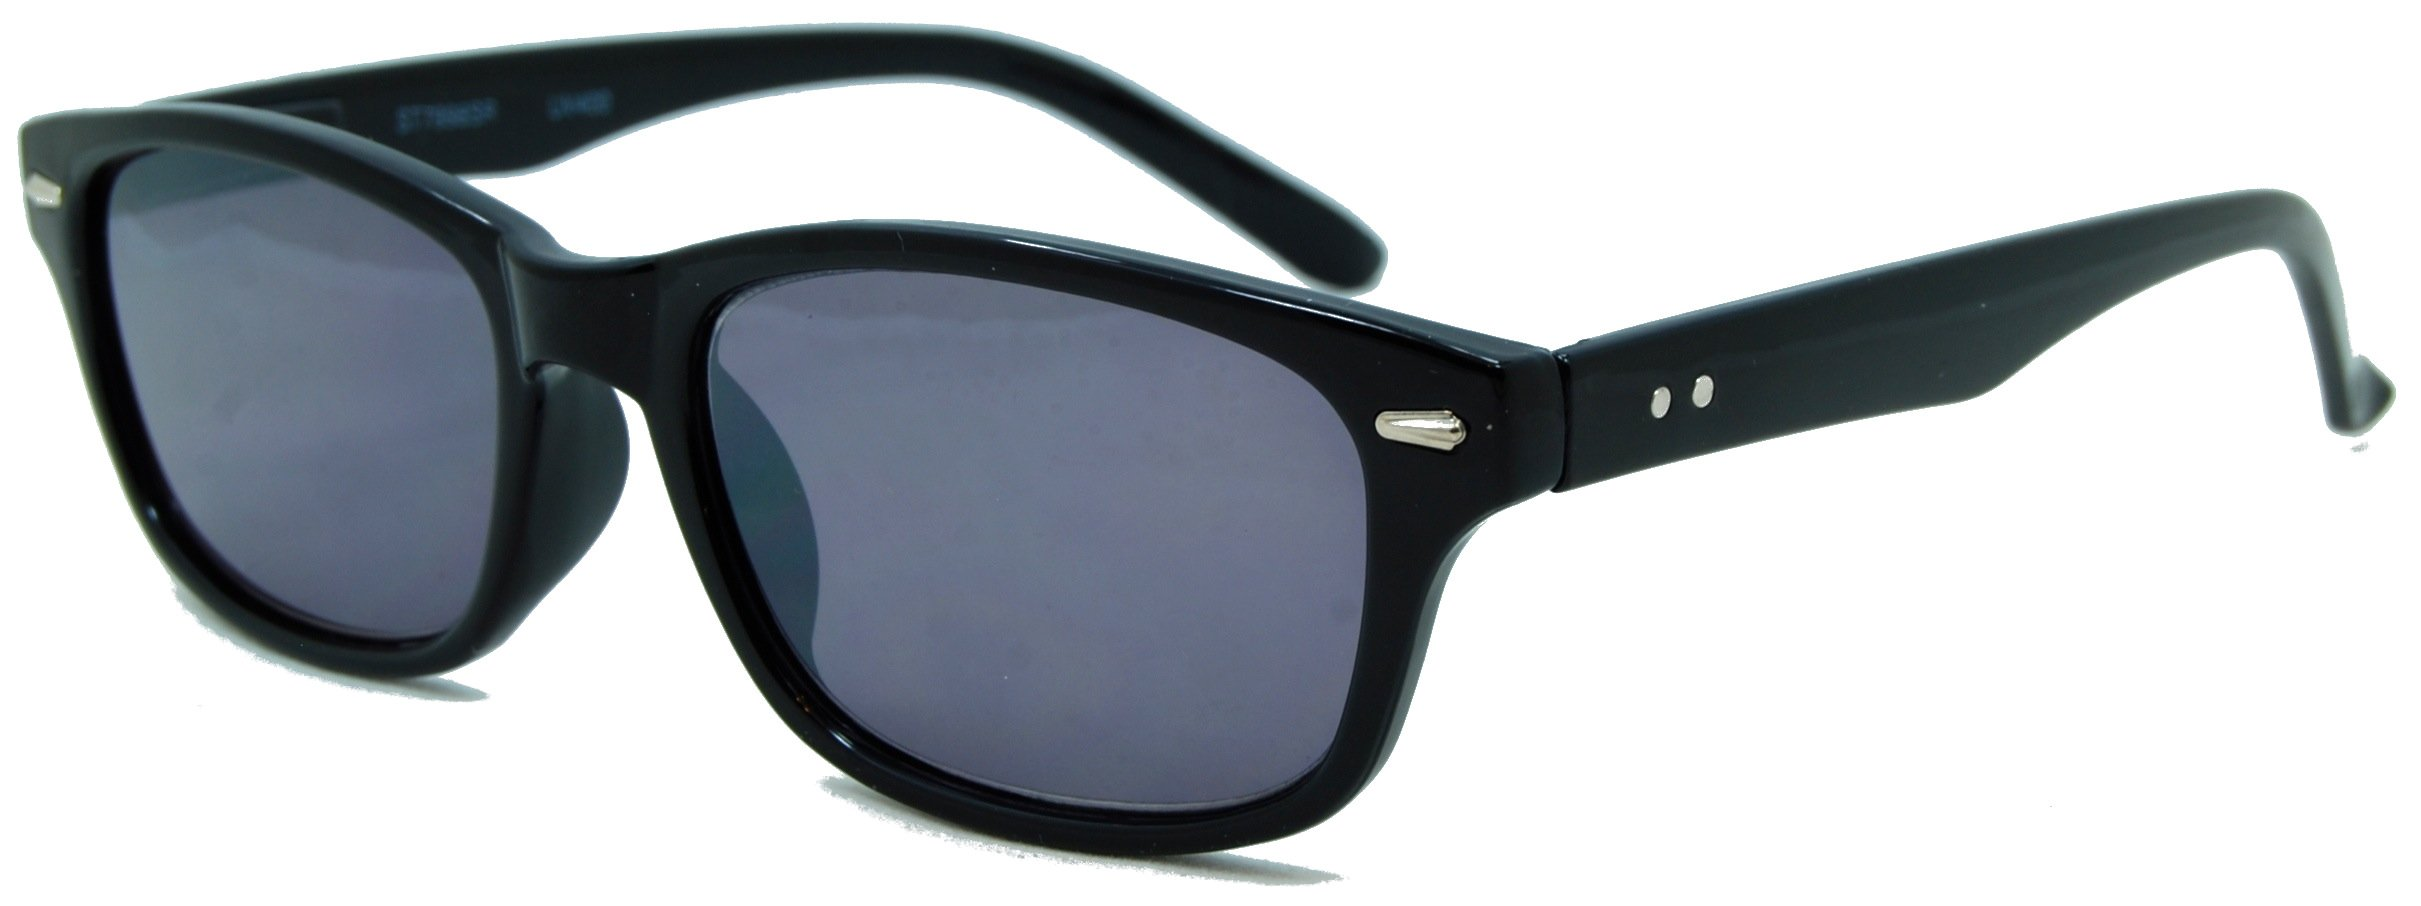 InSight, Classic Full Reader Sunglasses. Not BiFocals/Black/2.50 Strength by In Style Eyes